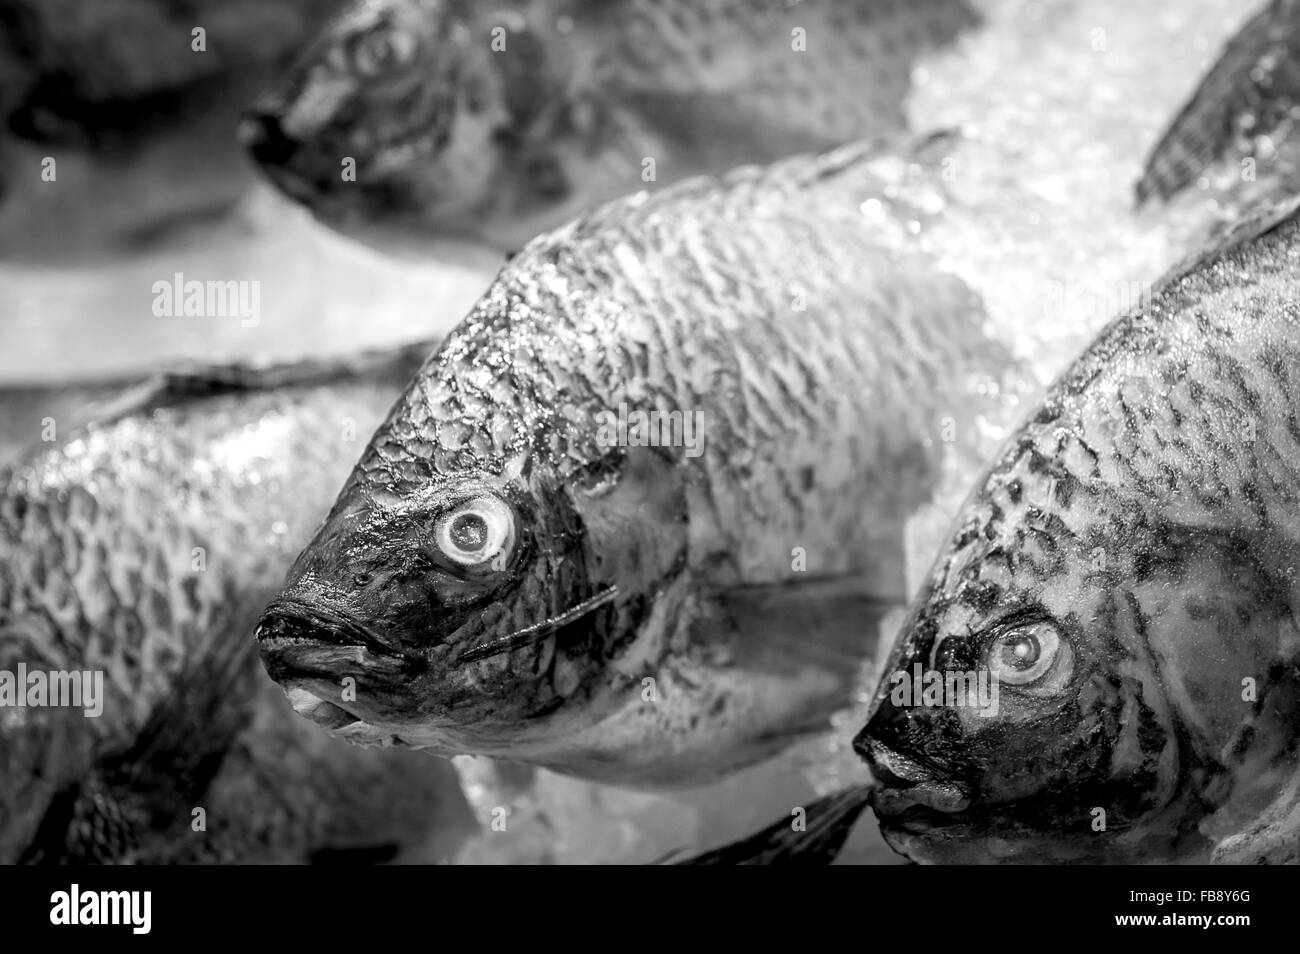 Fresh fish for sale in a fishmongers shop. - Stock Image